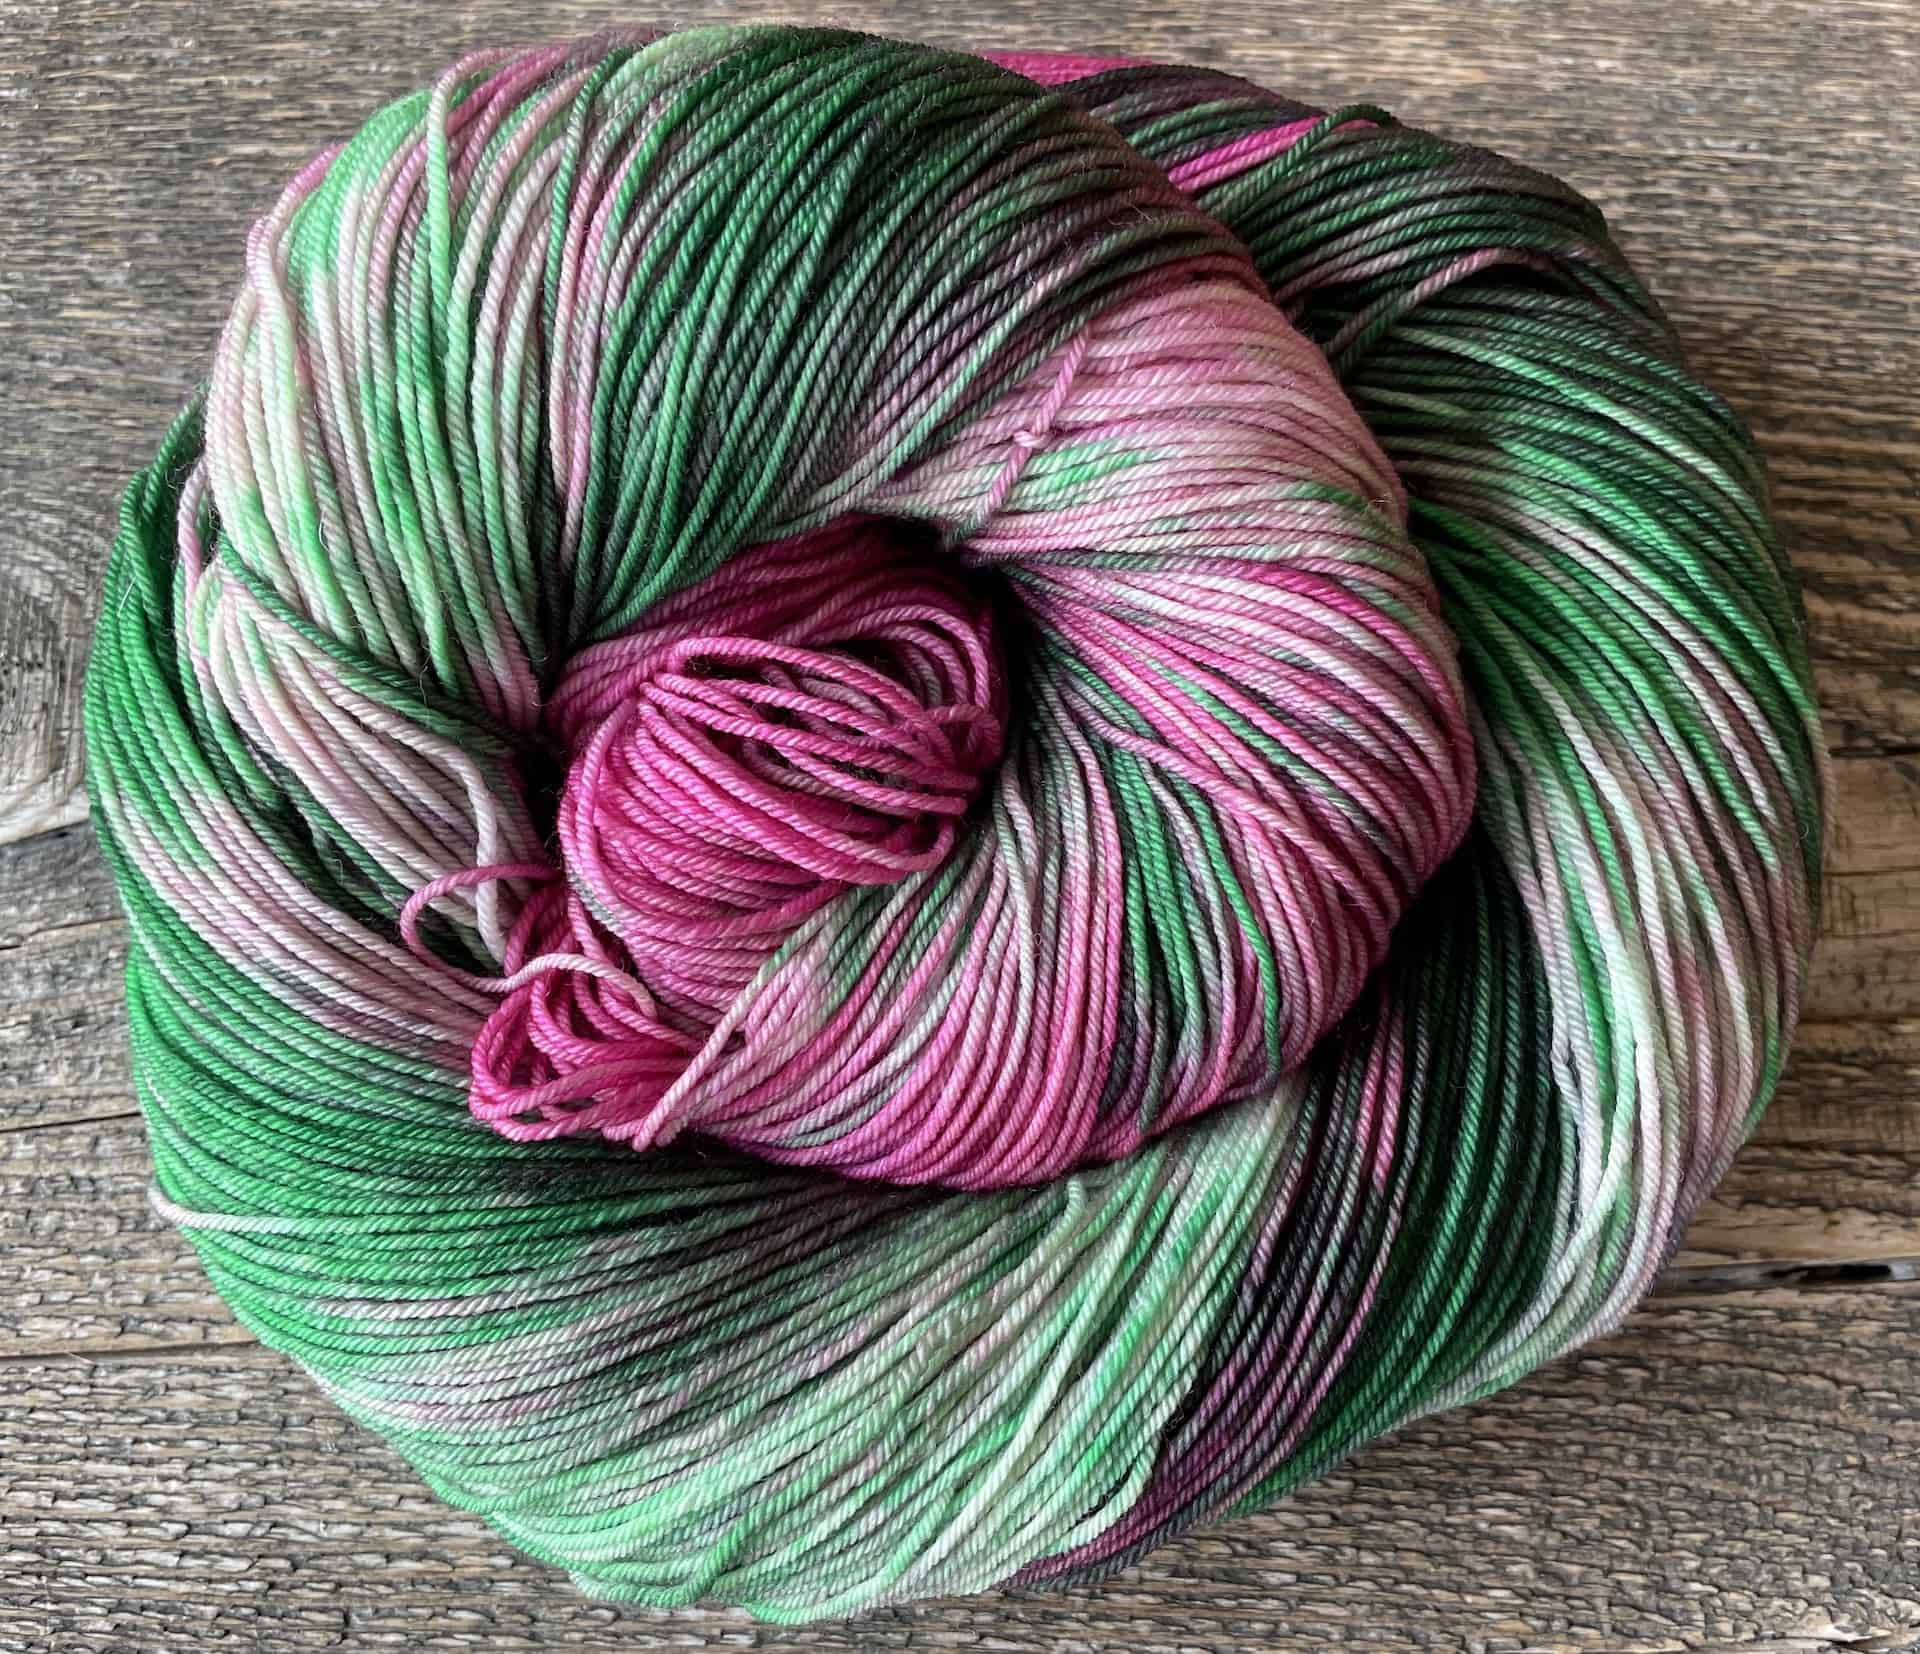 A spiral skein of green and pink yarn.